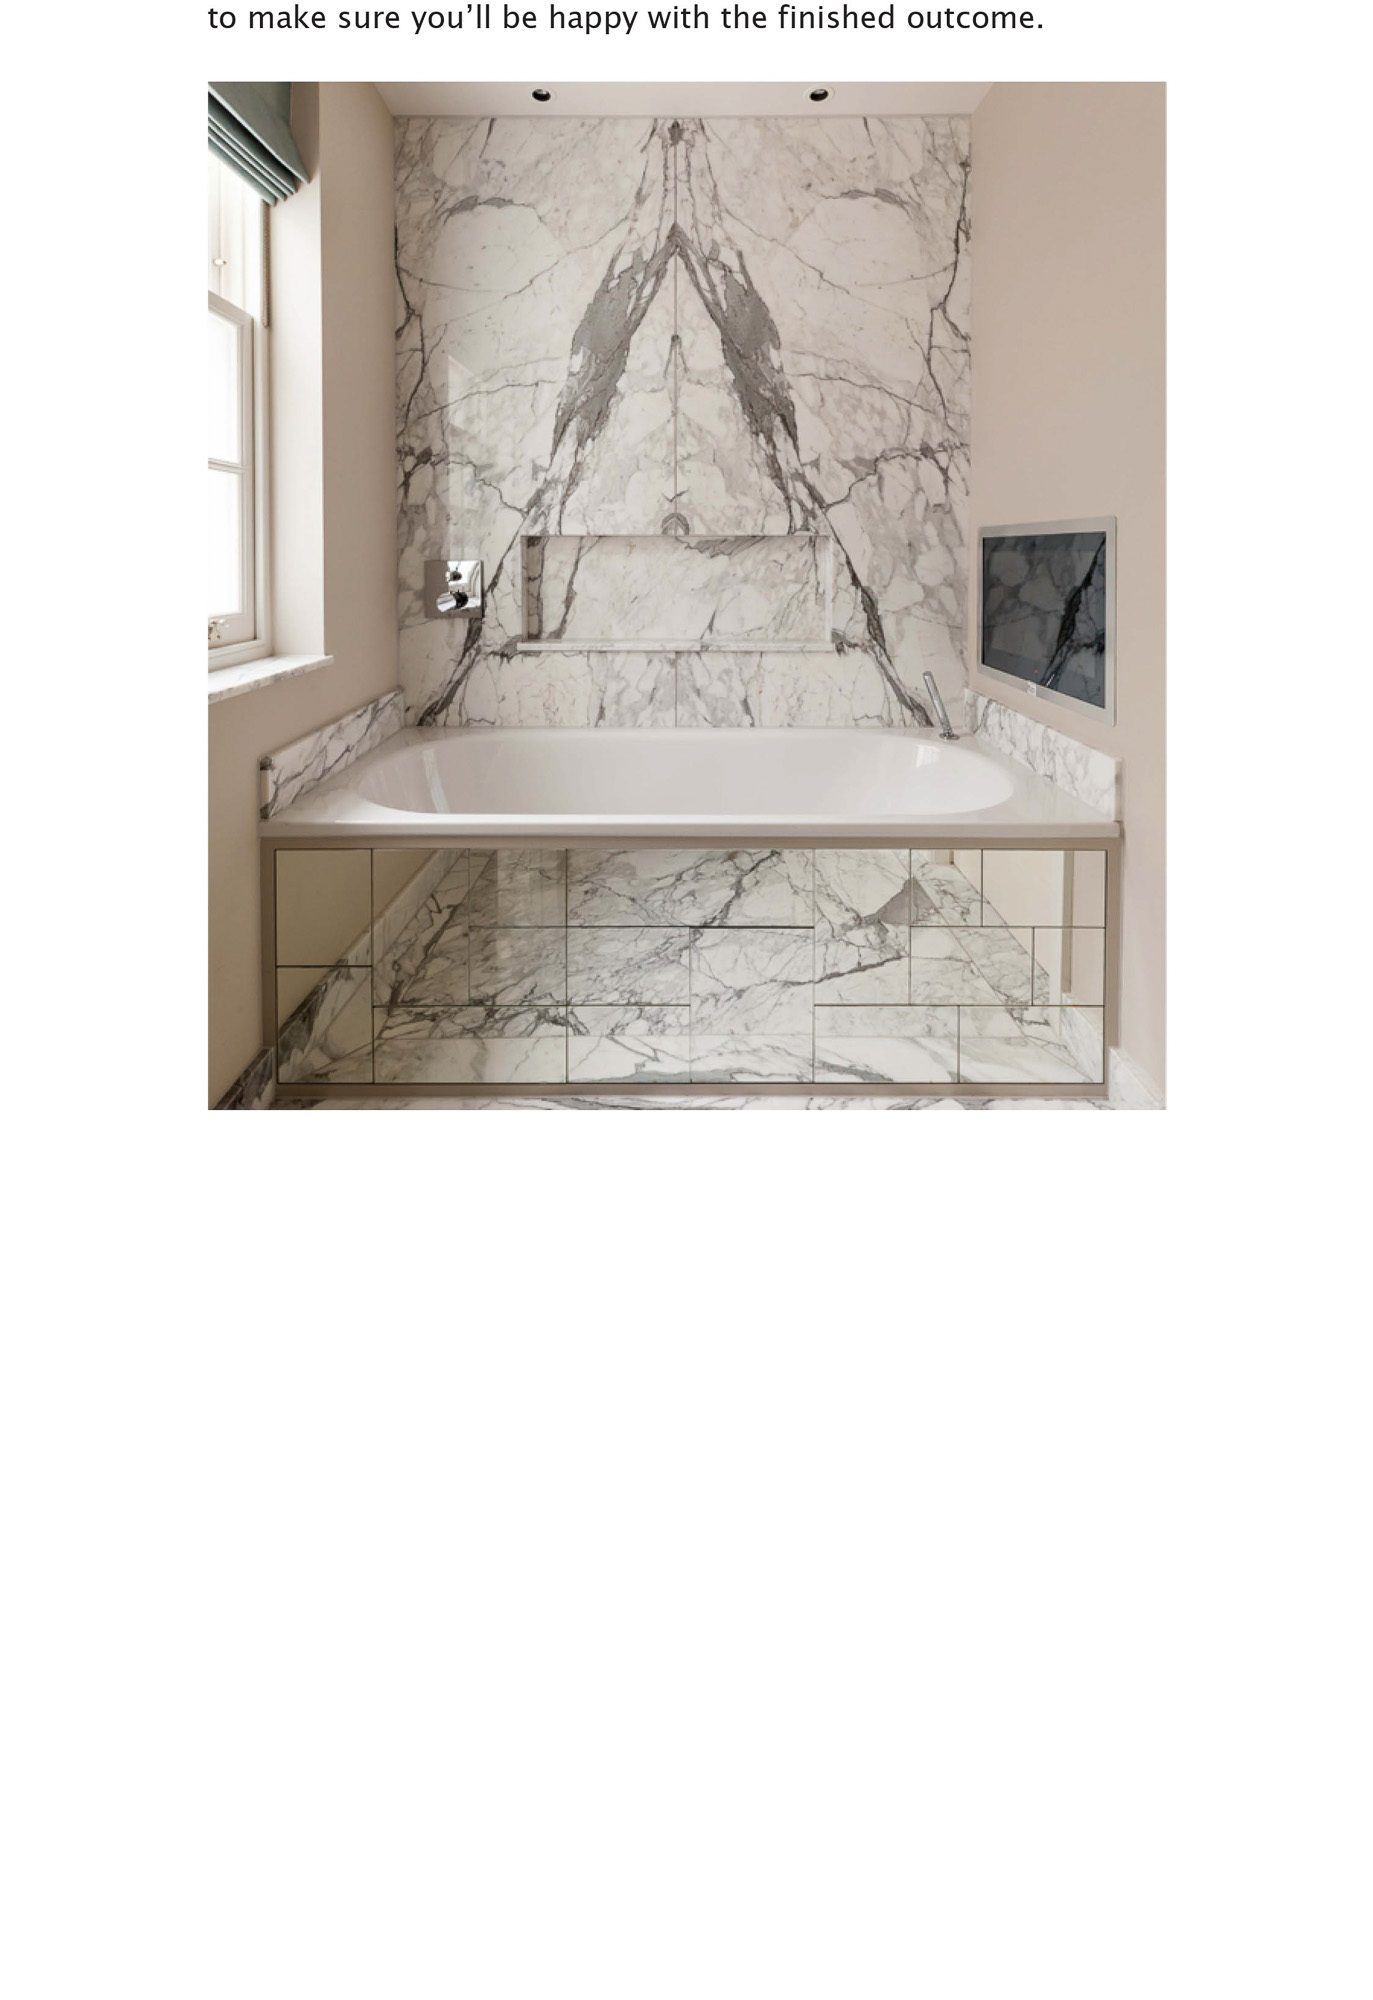 achica-living-chelsea-townhouse-by-designer-susie-rumbold-01-03-3-2